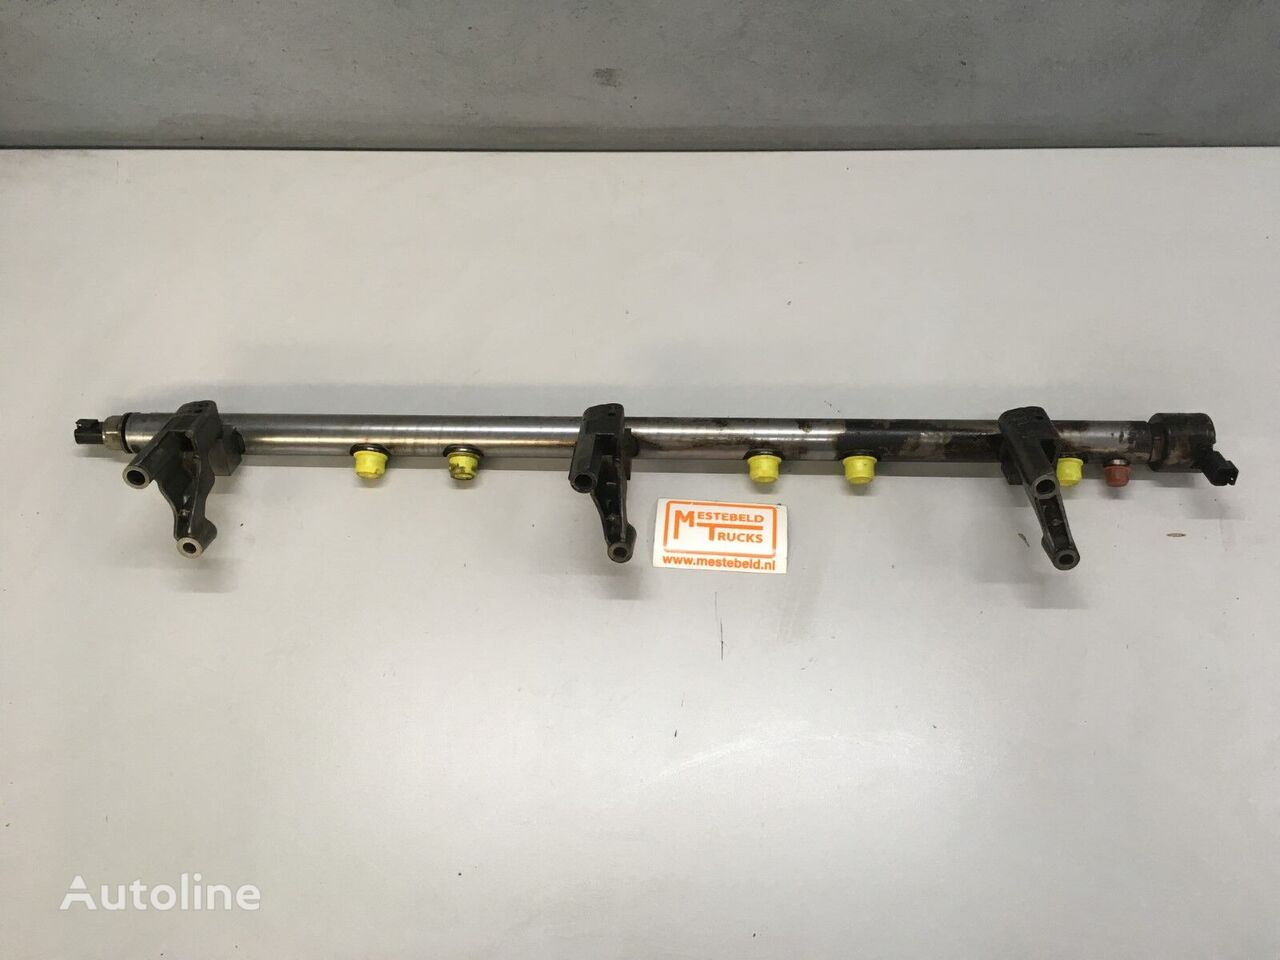 BRANDSTOF DRUKBUIS RENAULT other fuel system spare part for RENAULT DTI 11 460 EUVI EURO6 truck